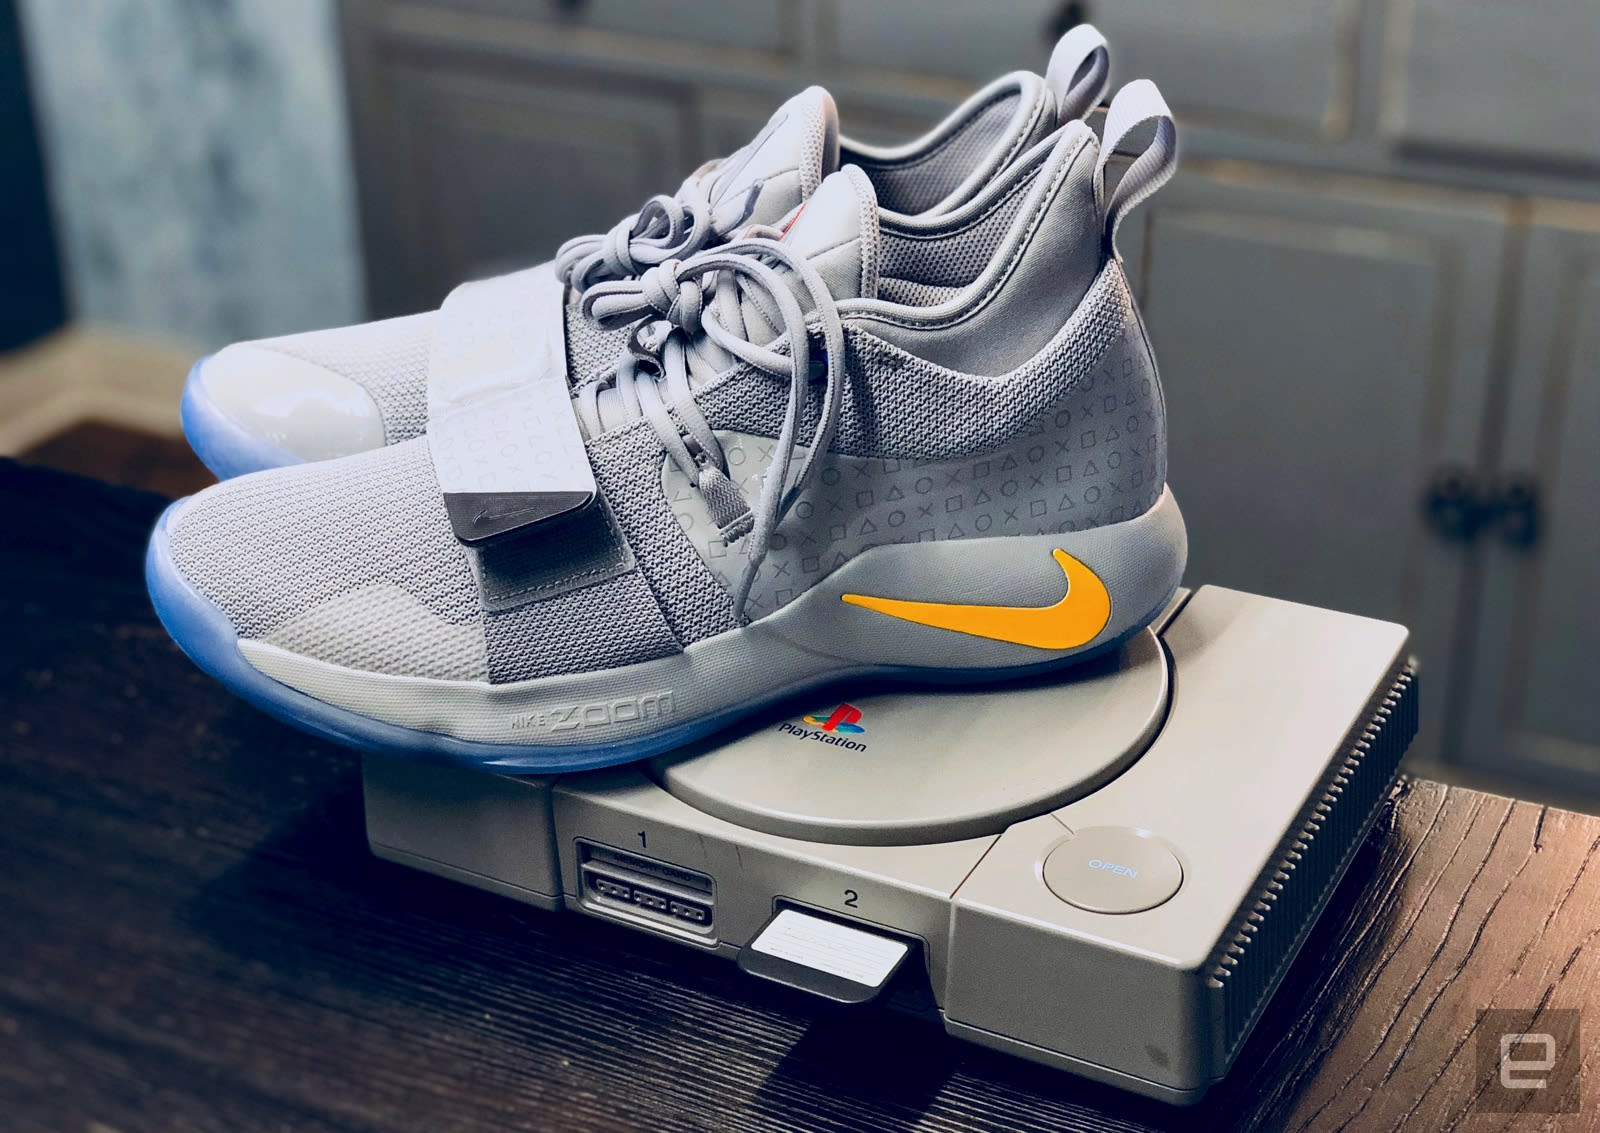 6b6419675a6 Nike s new PlayStation sneakers pay homage to Sony s classic console